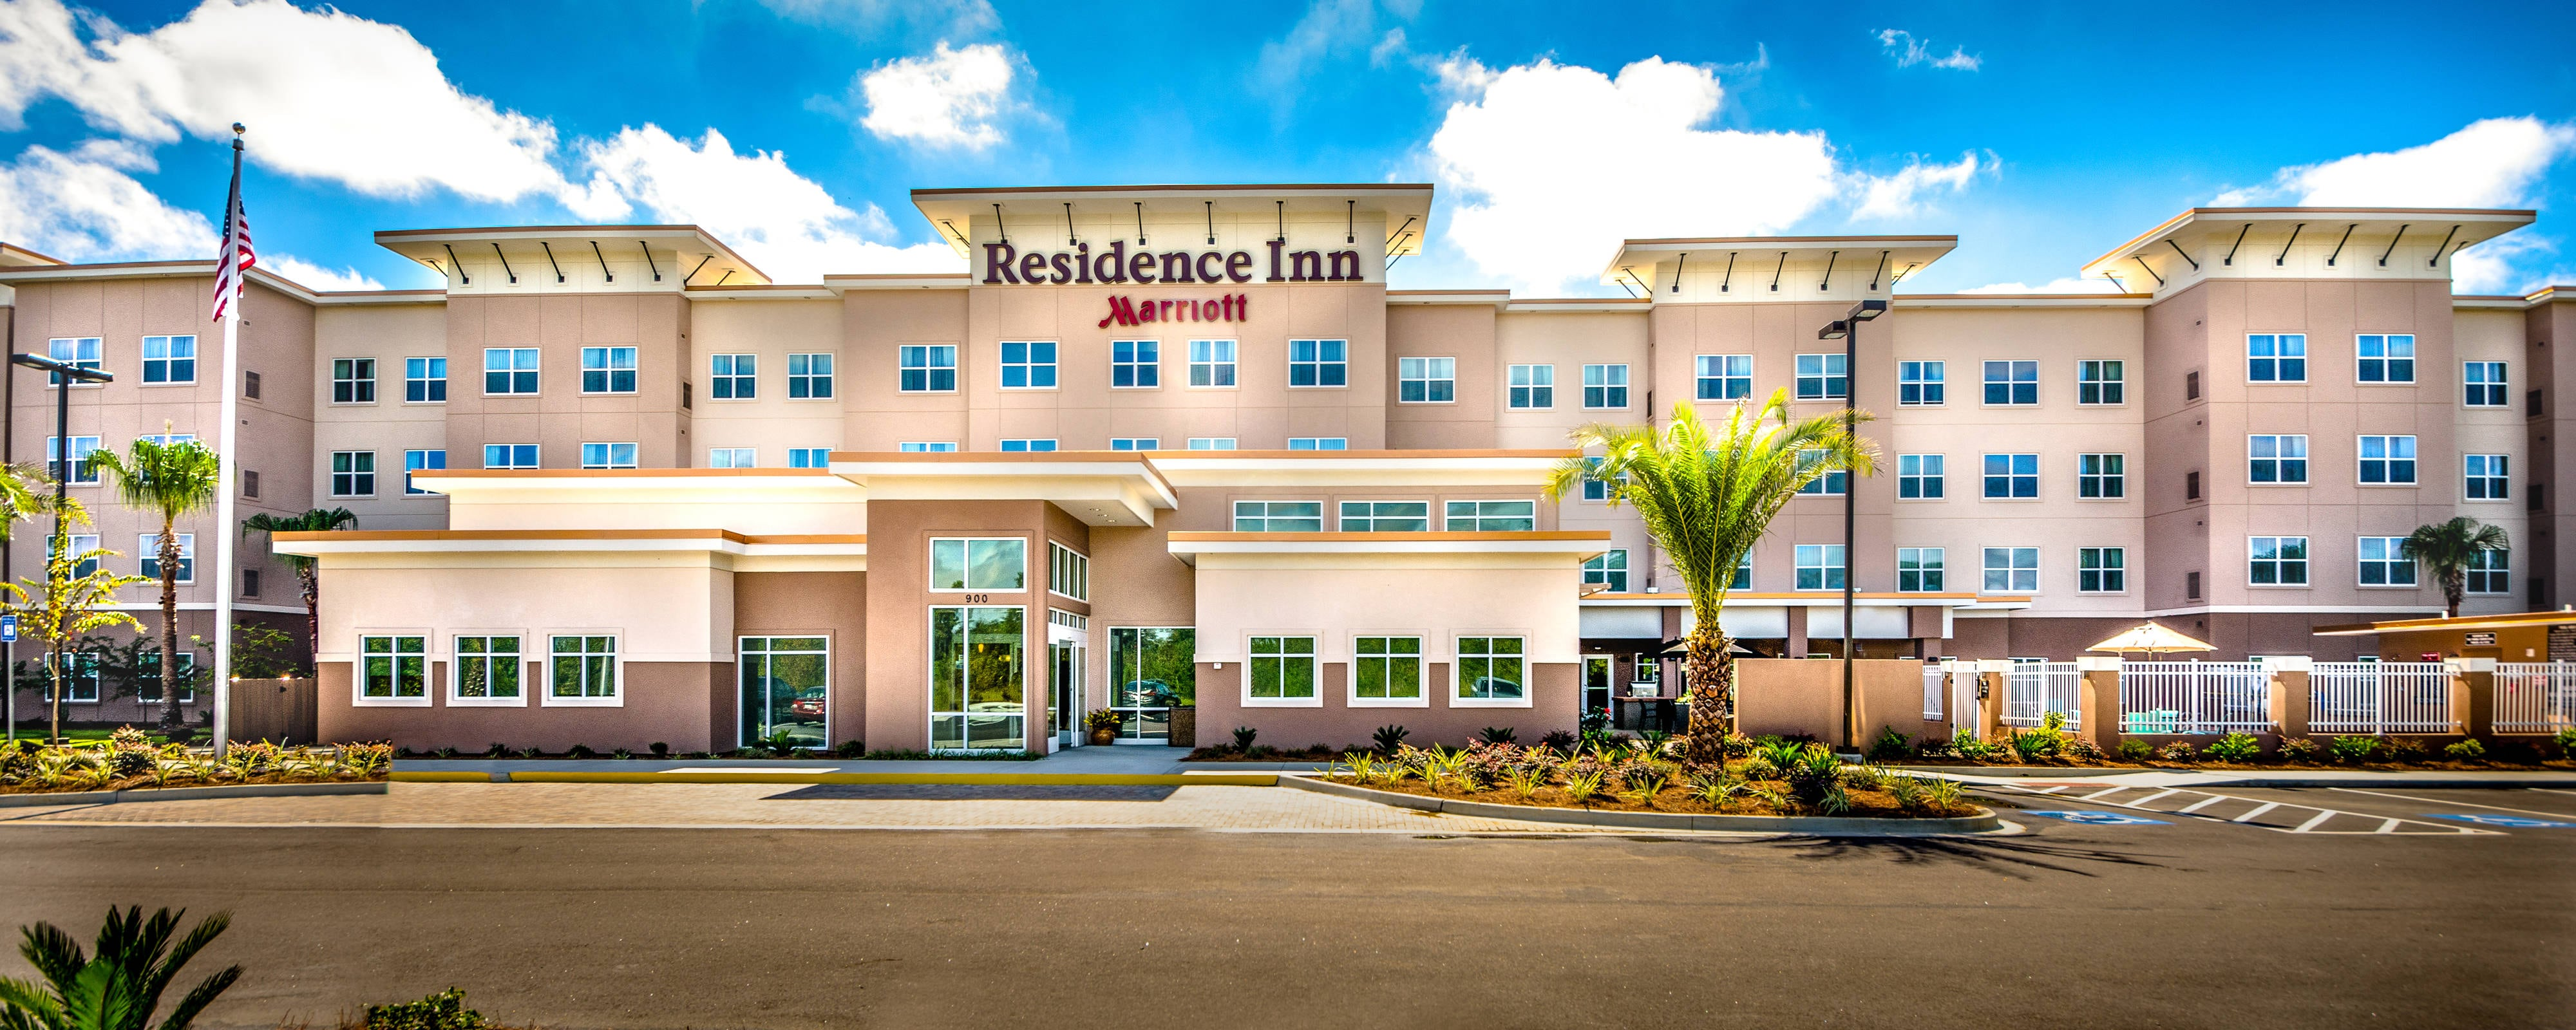 Pooler, Airport Hotel, Pet-Friendly, Extended-Stay, Corporate Housing